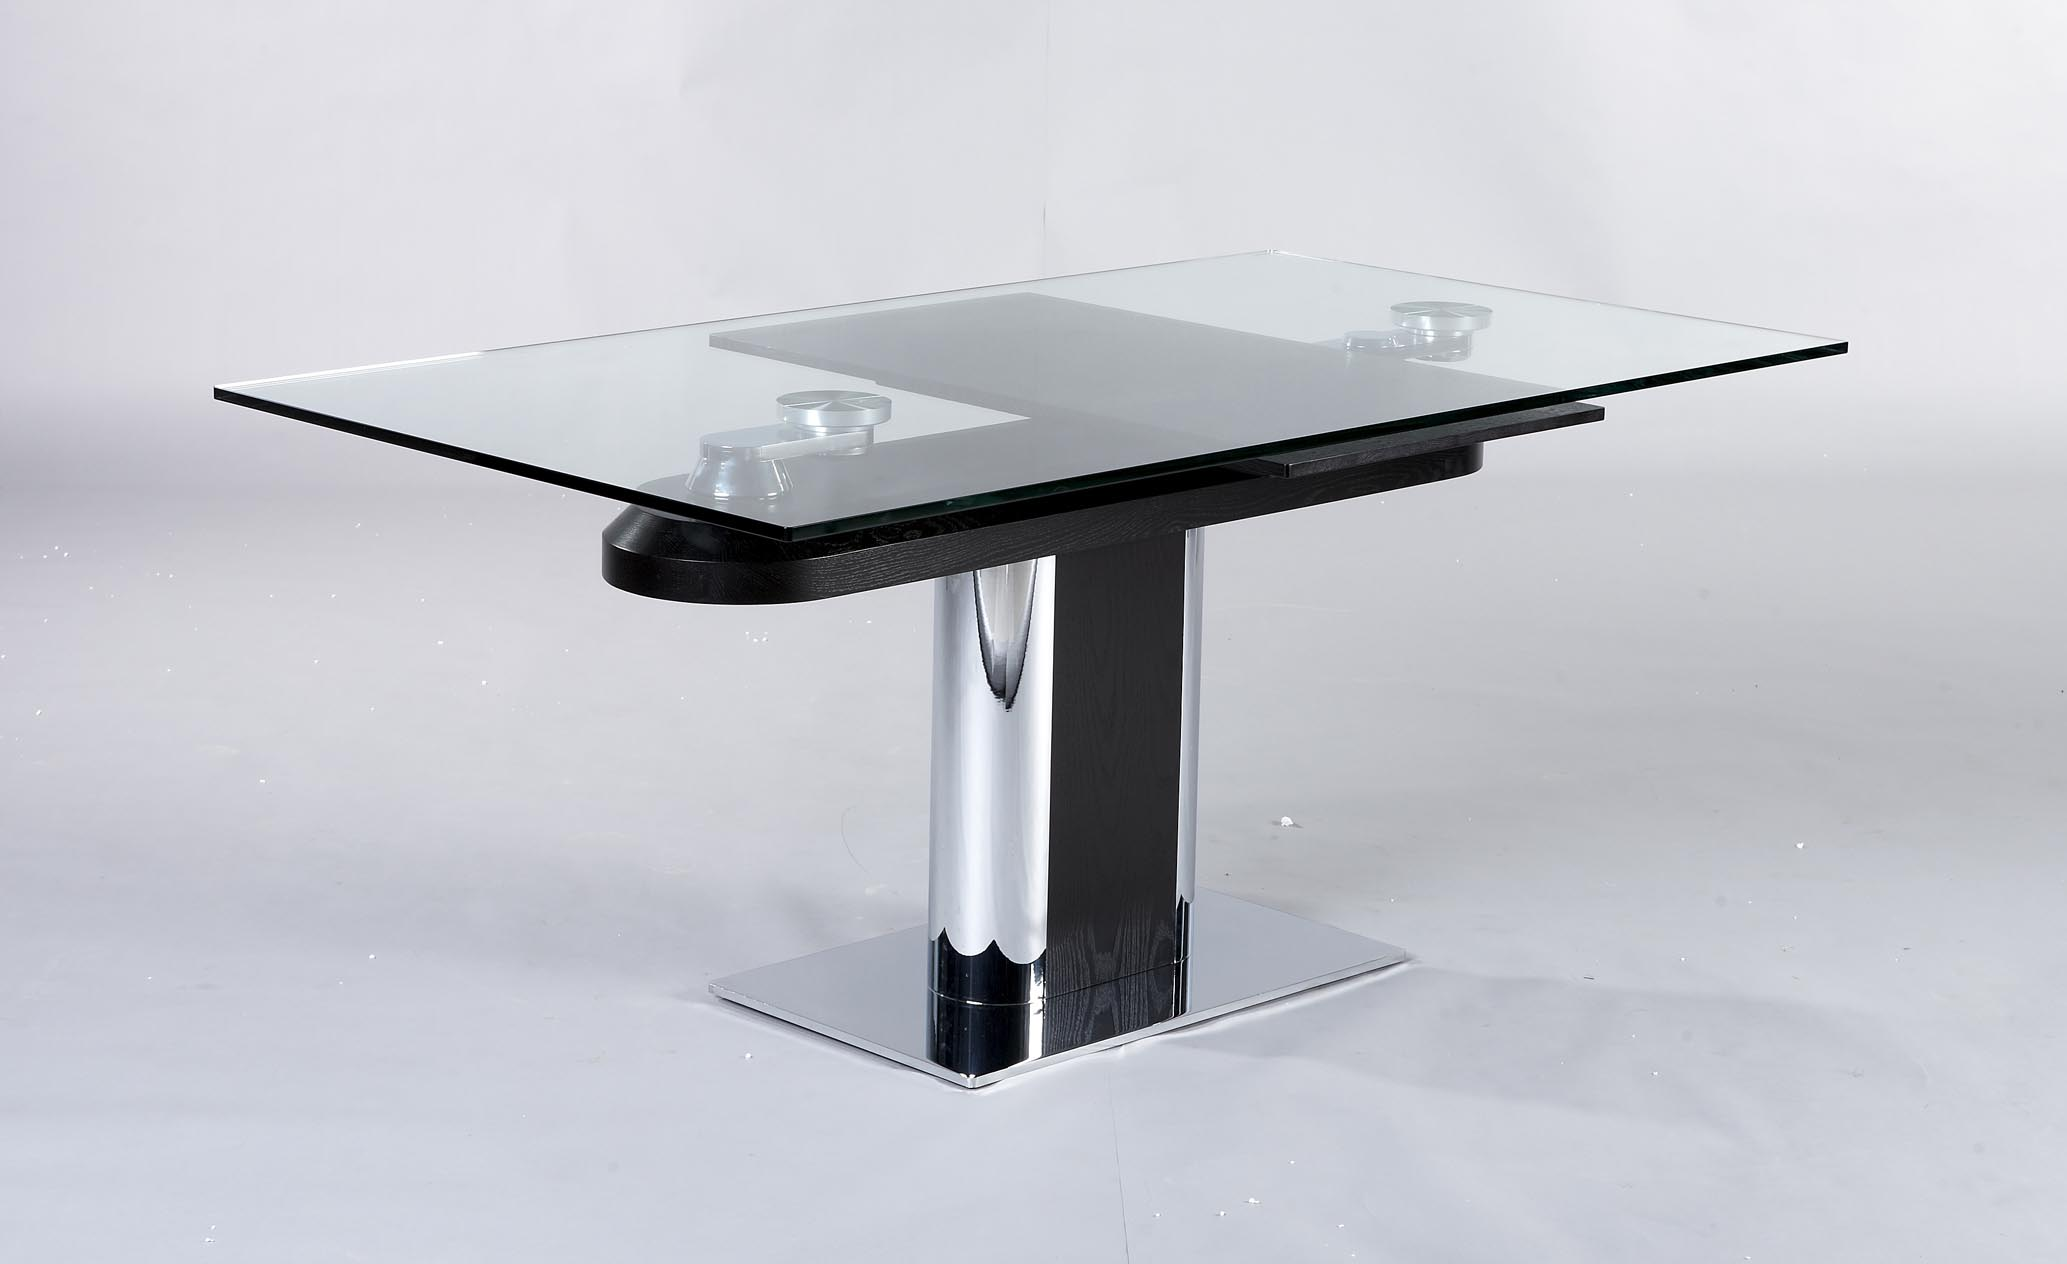 Table salle manger design en verre avec rallonges for Table a manger en verre